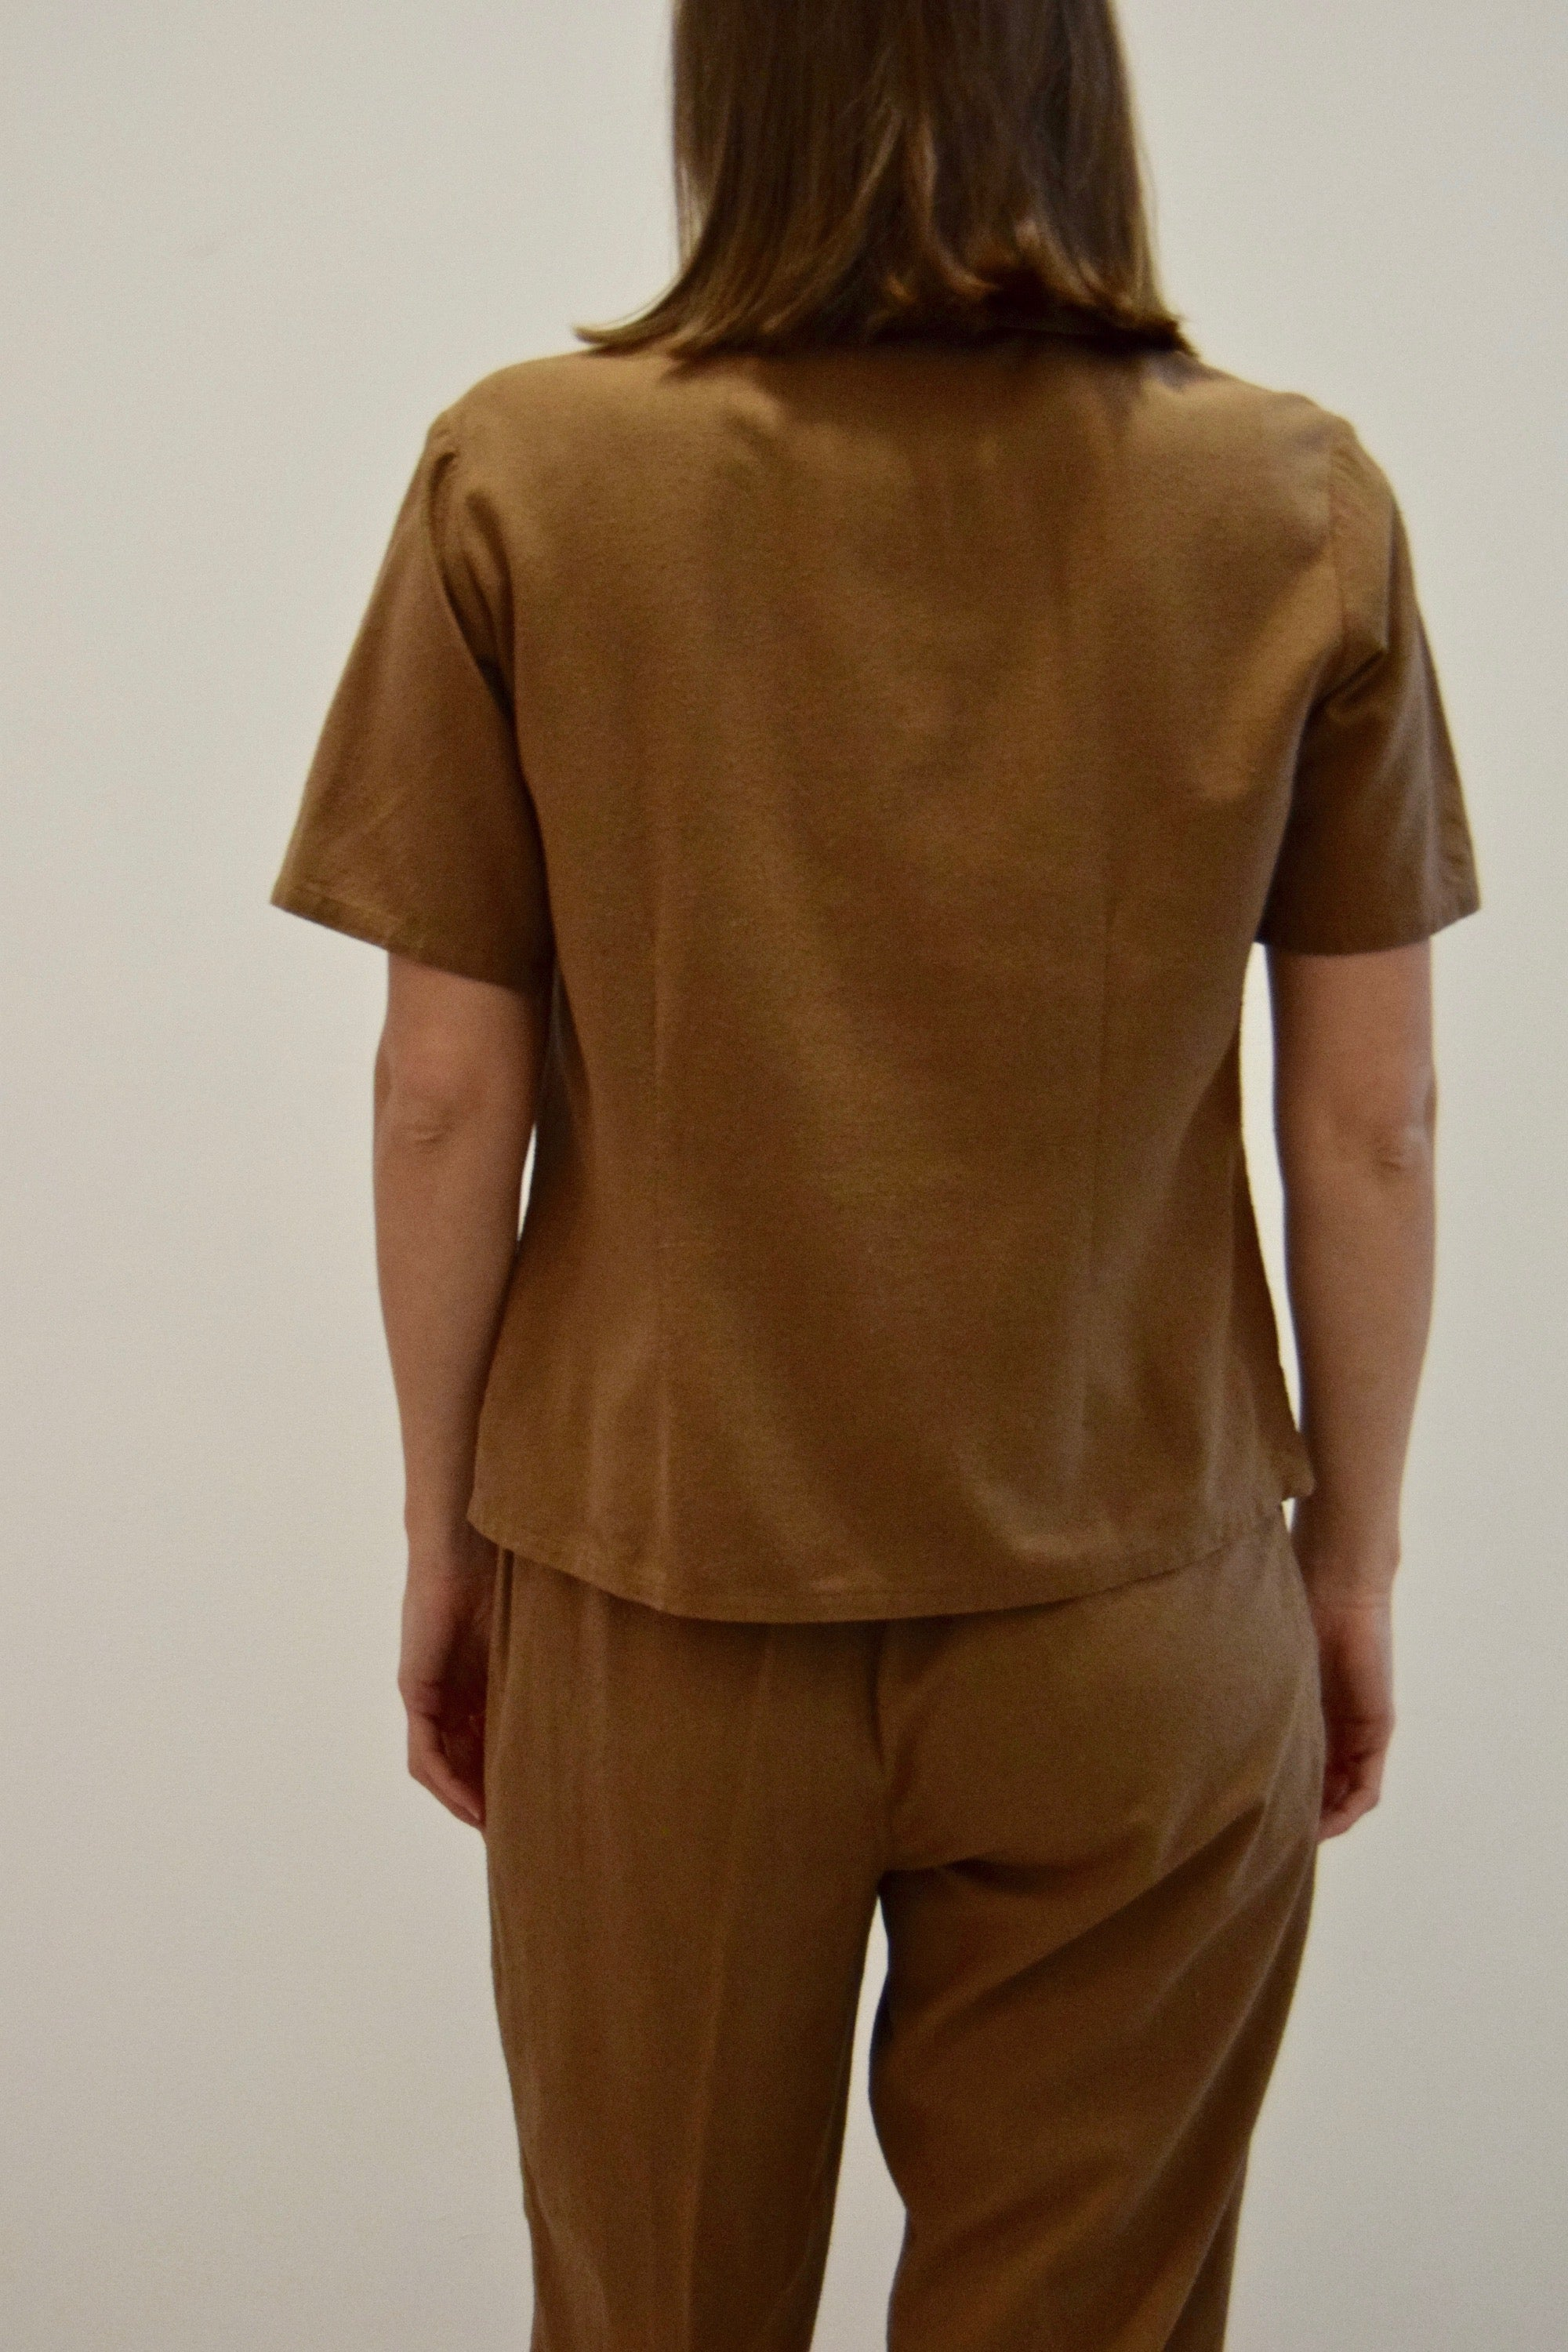 Cedar Two Piece Raw Silk Set FREE SHIPPING TO THE U.S.